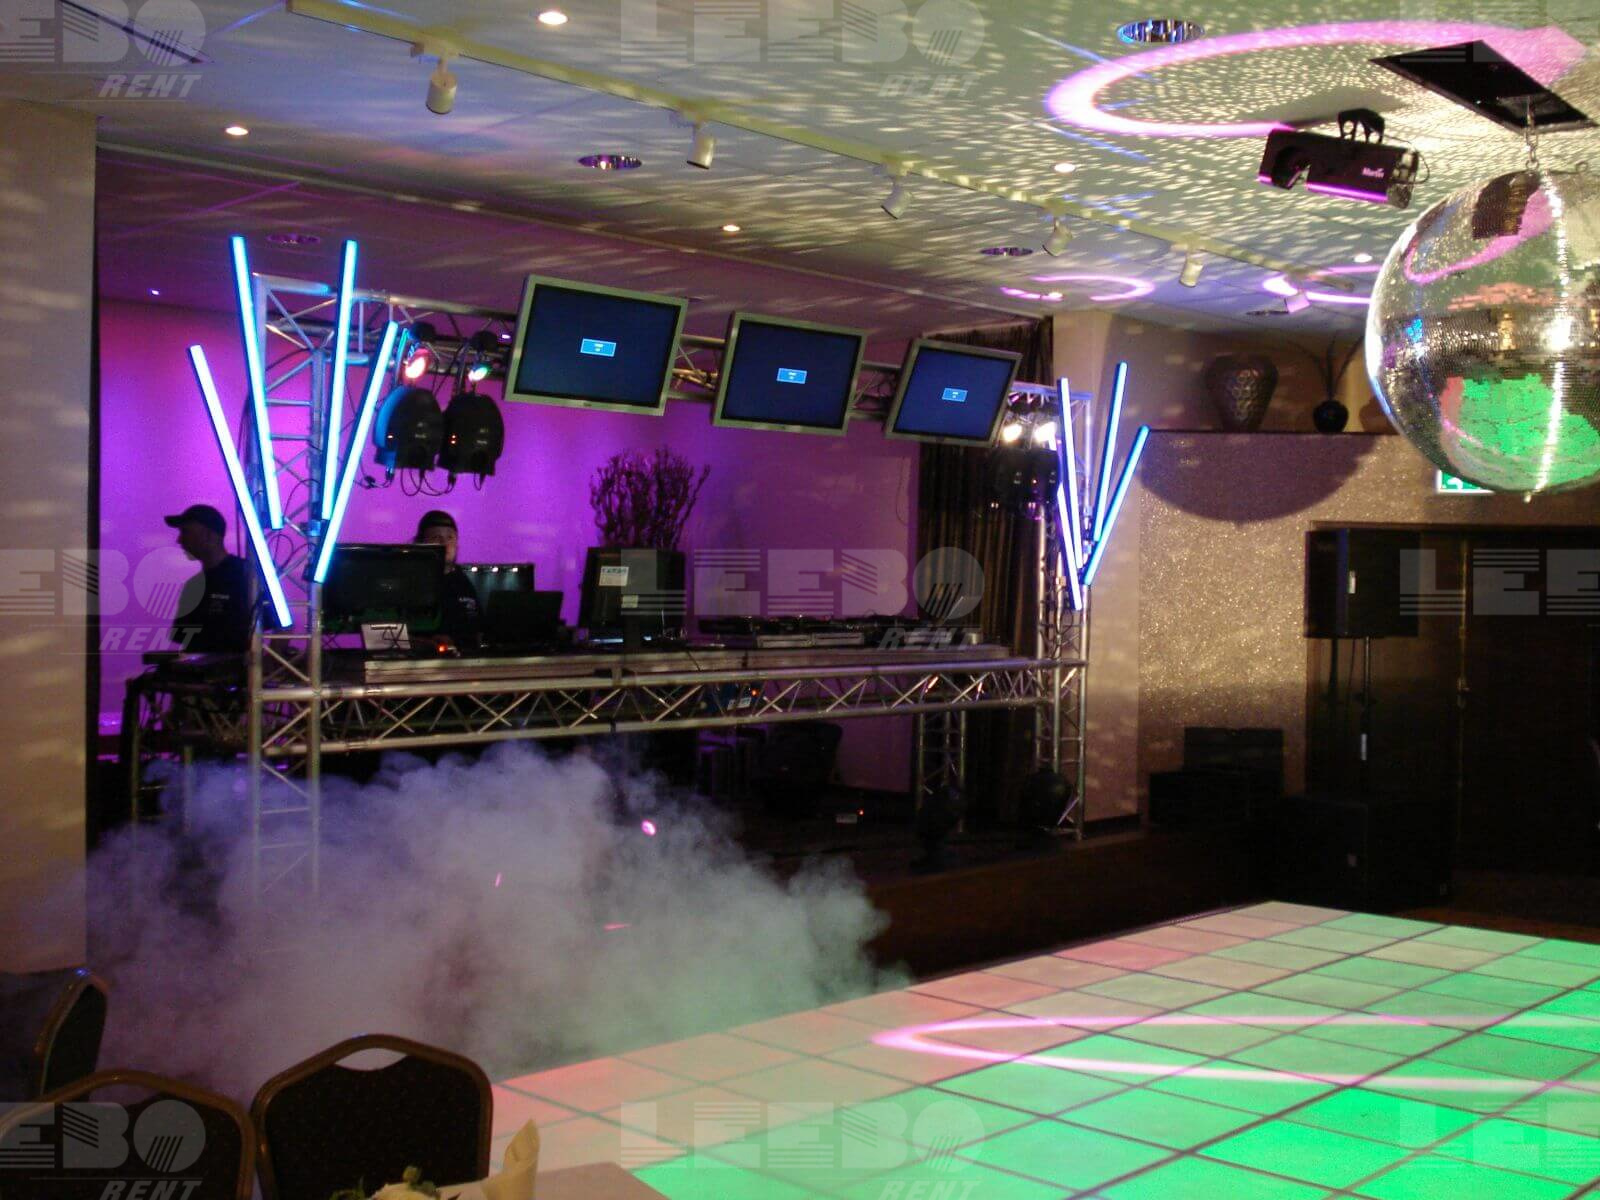 Saturdat Night fever event verzorgt door Leeborent